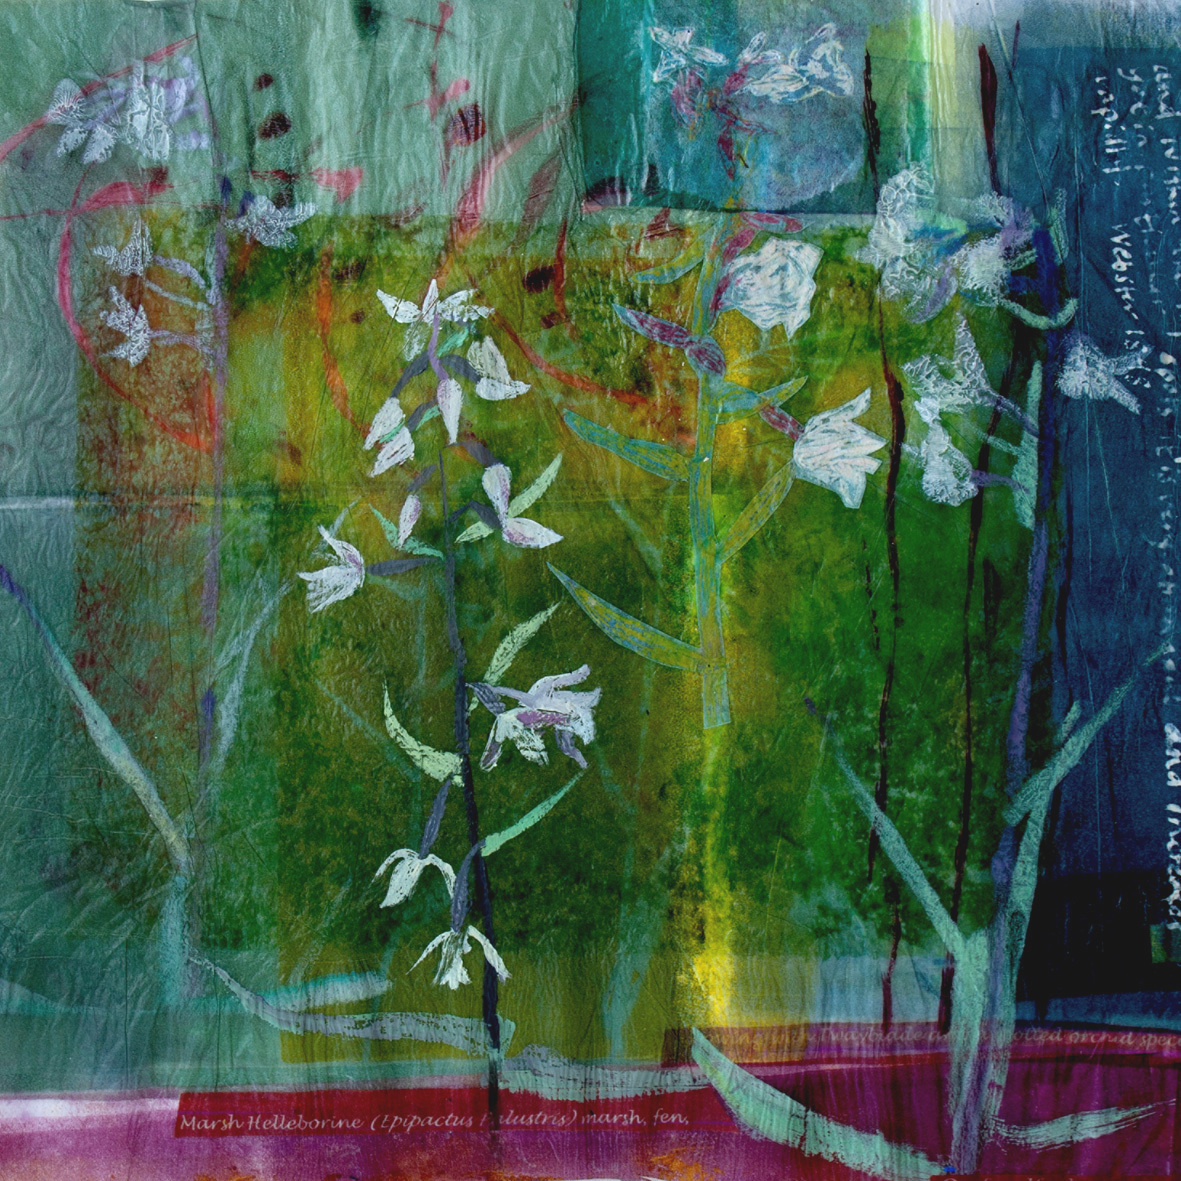 'in watery places' (Marsh Helleborine and Twayblade) mixed media print techniques